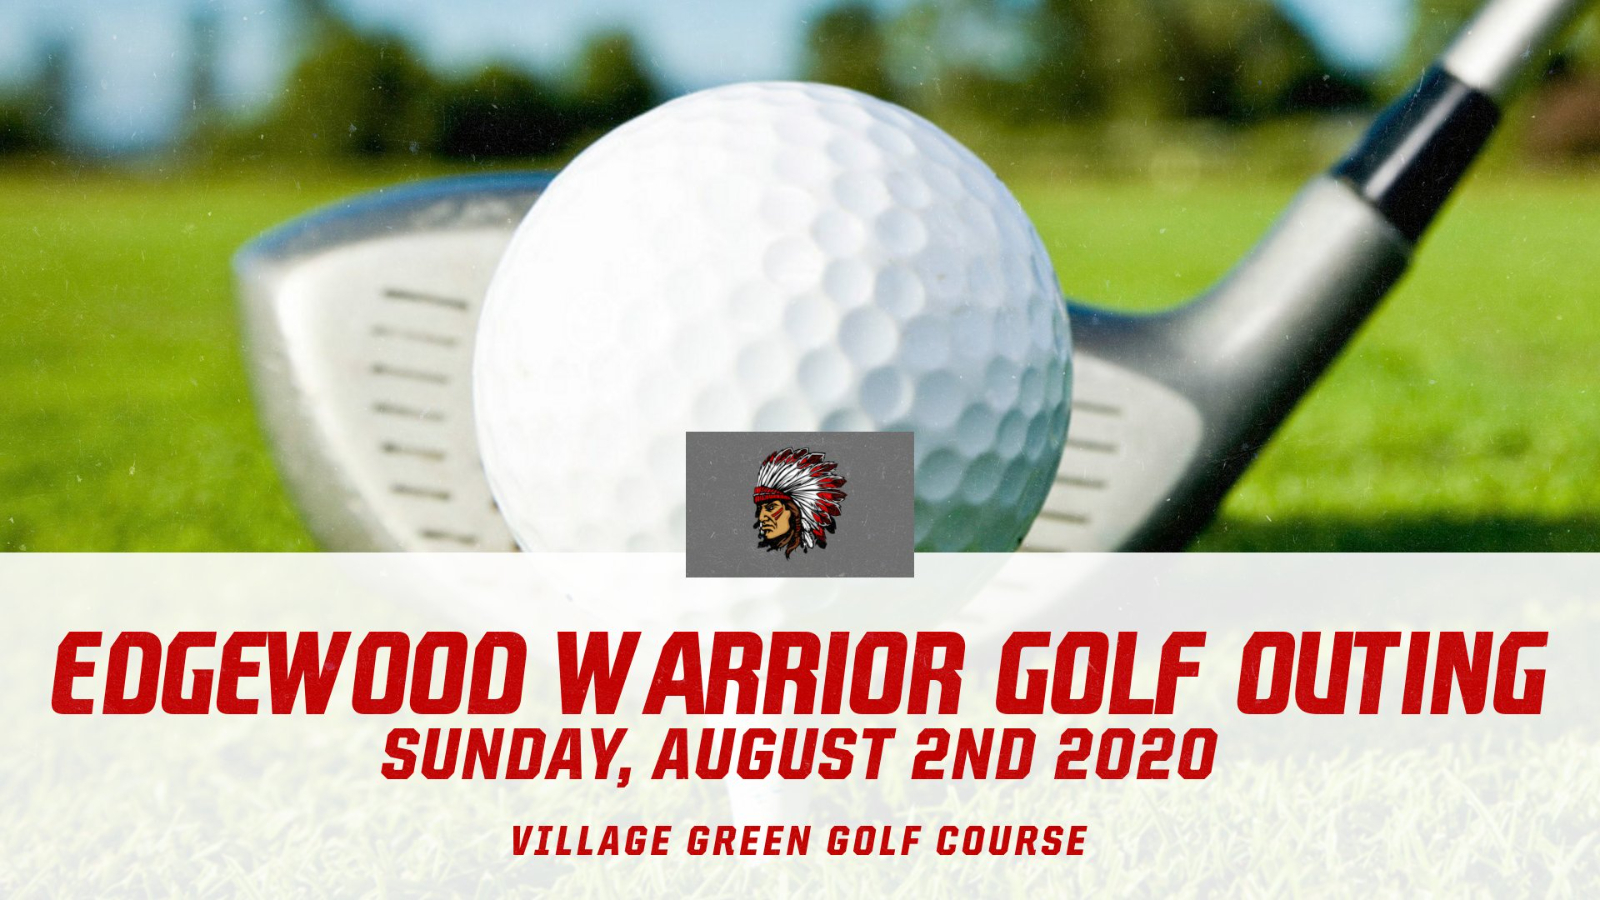 9th Annual Warrior Golf Outing